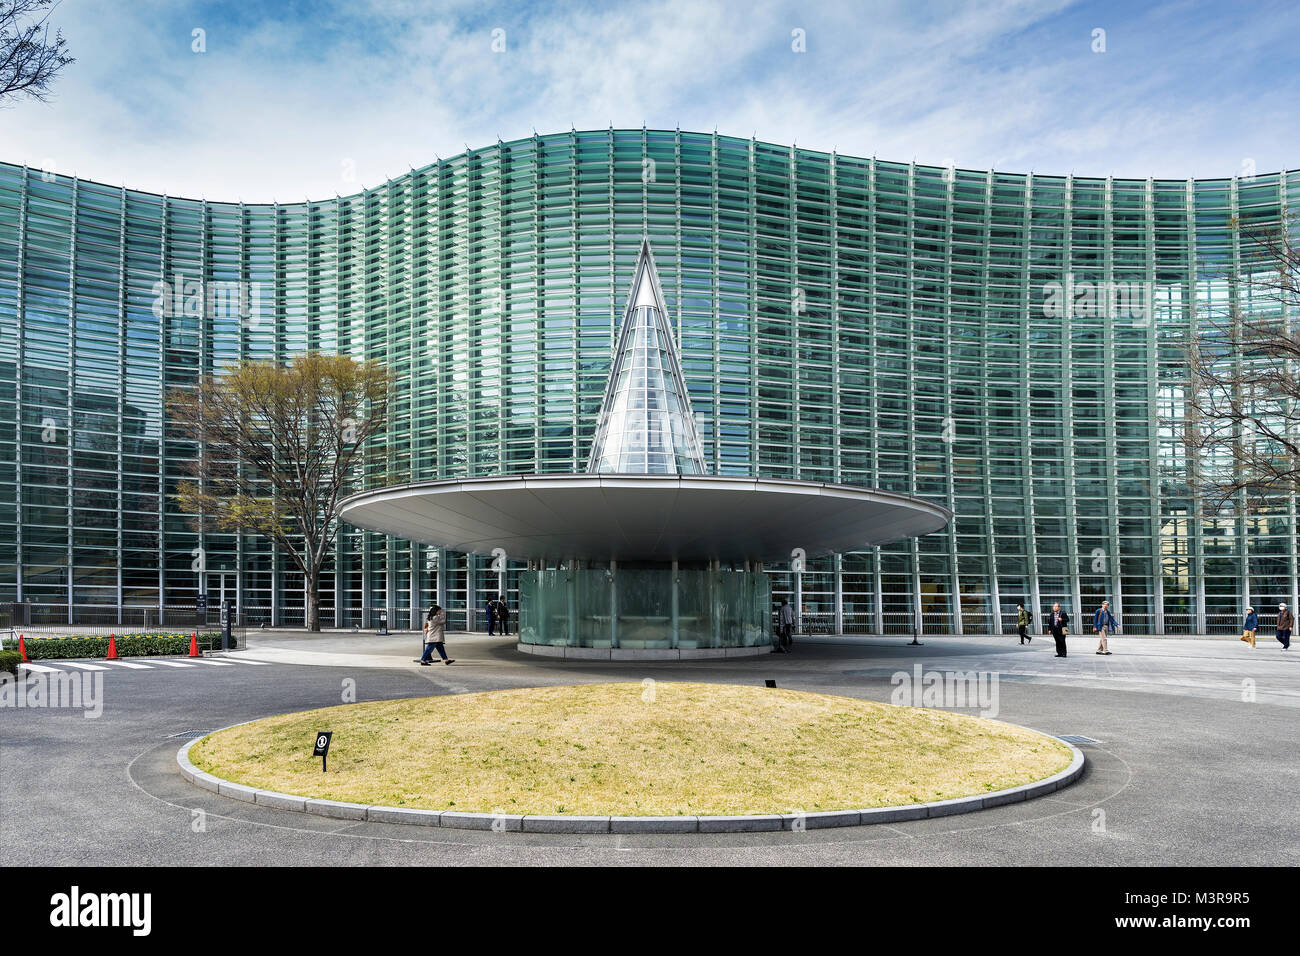 Japan, Honshu island, Kanto, Tokyo, Roppongi district, the National Art Center. Stock Photo